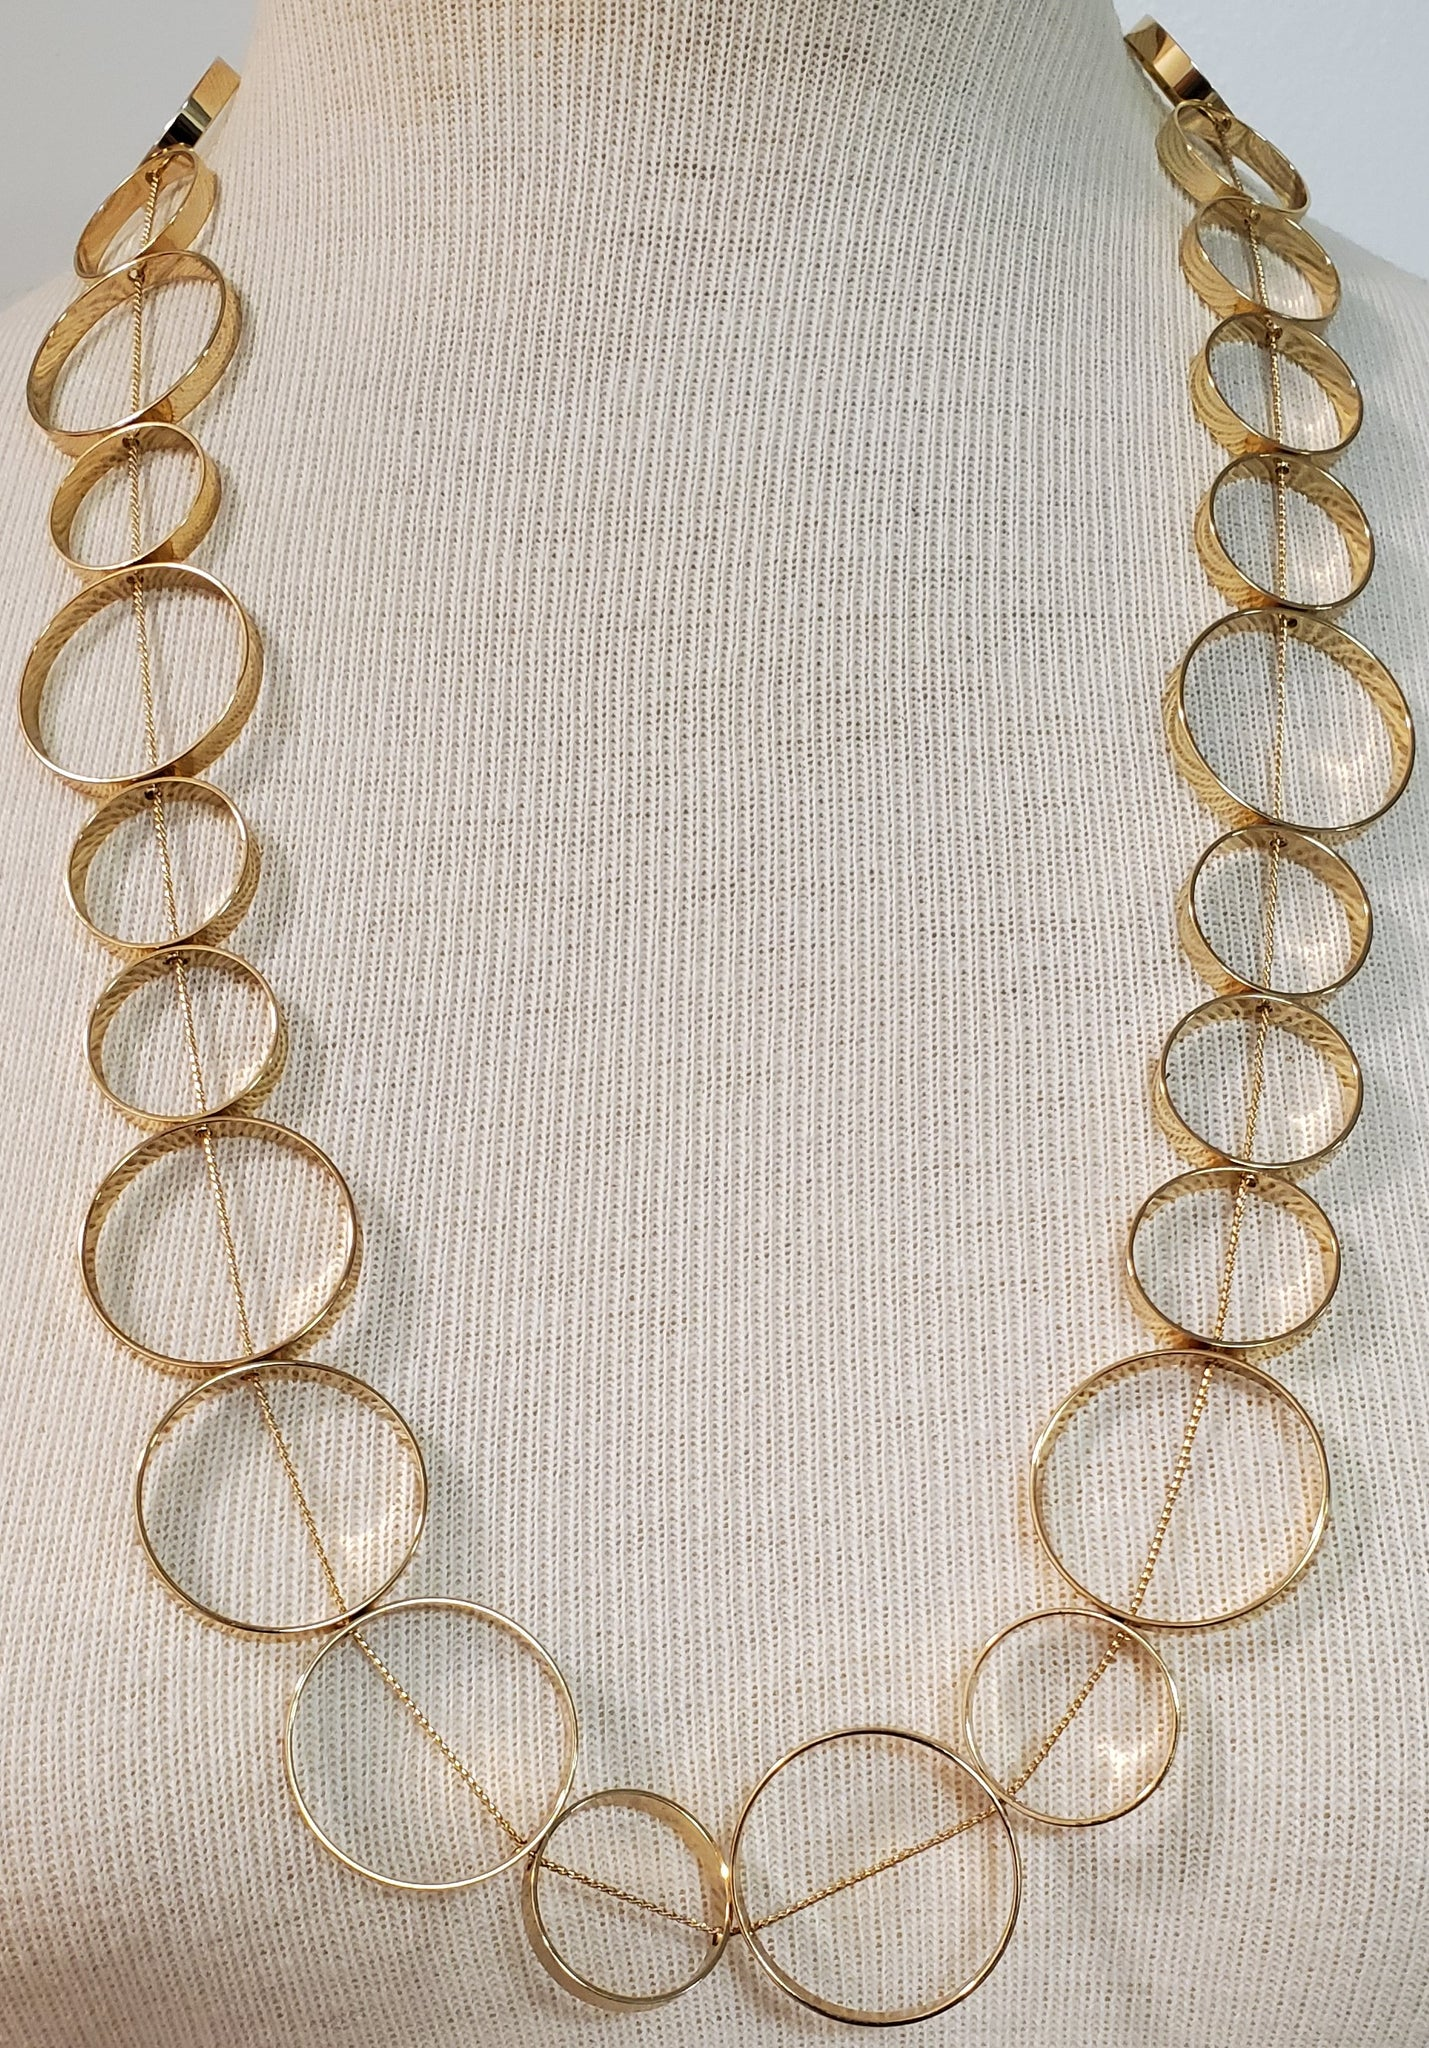 Circles Galore Gold Necklace